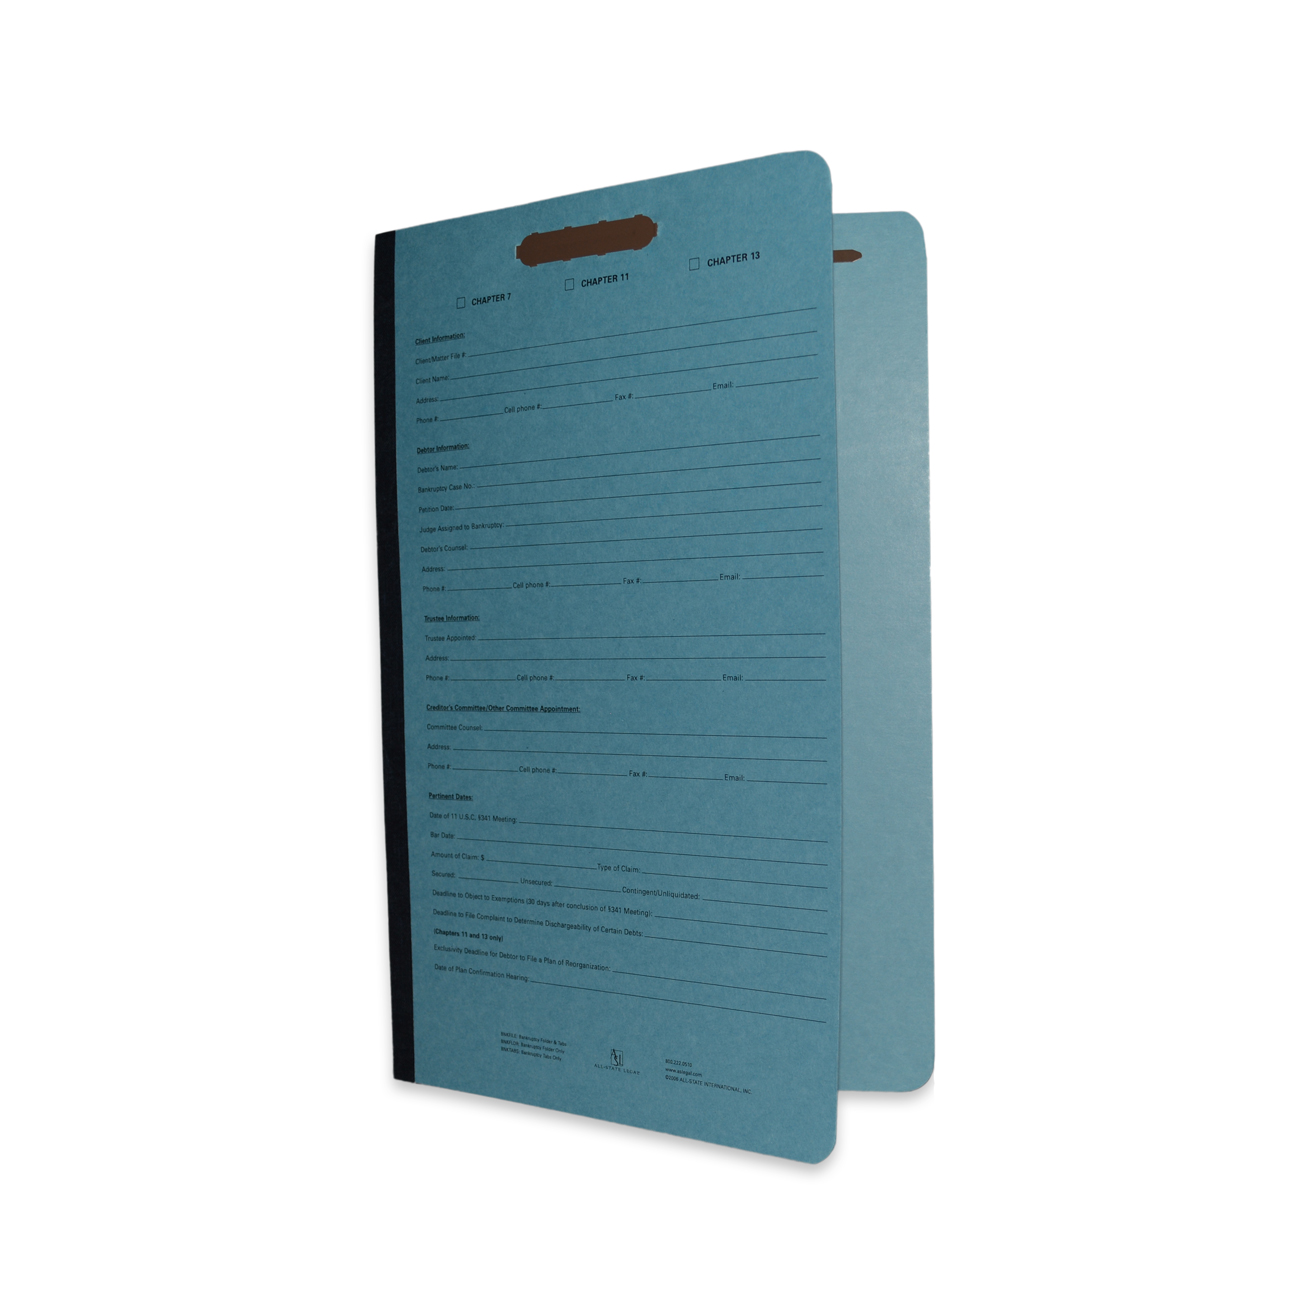 Bankruptcy Folder with Tabs Preprinted Cover - Legal Size, Blue Bankruptcy Folder, 20 Bottom Tabs, 10/BX